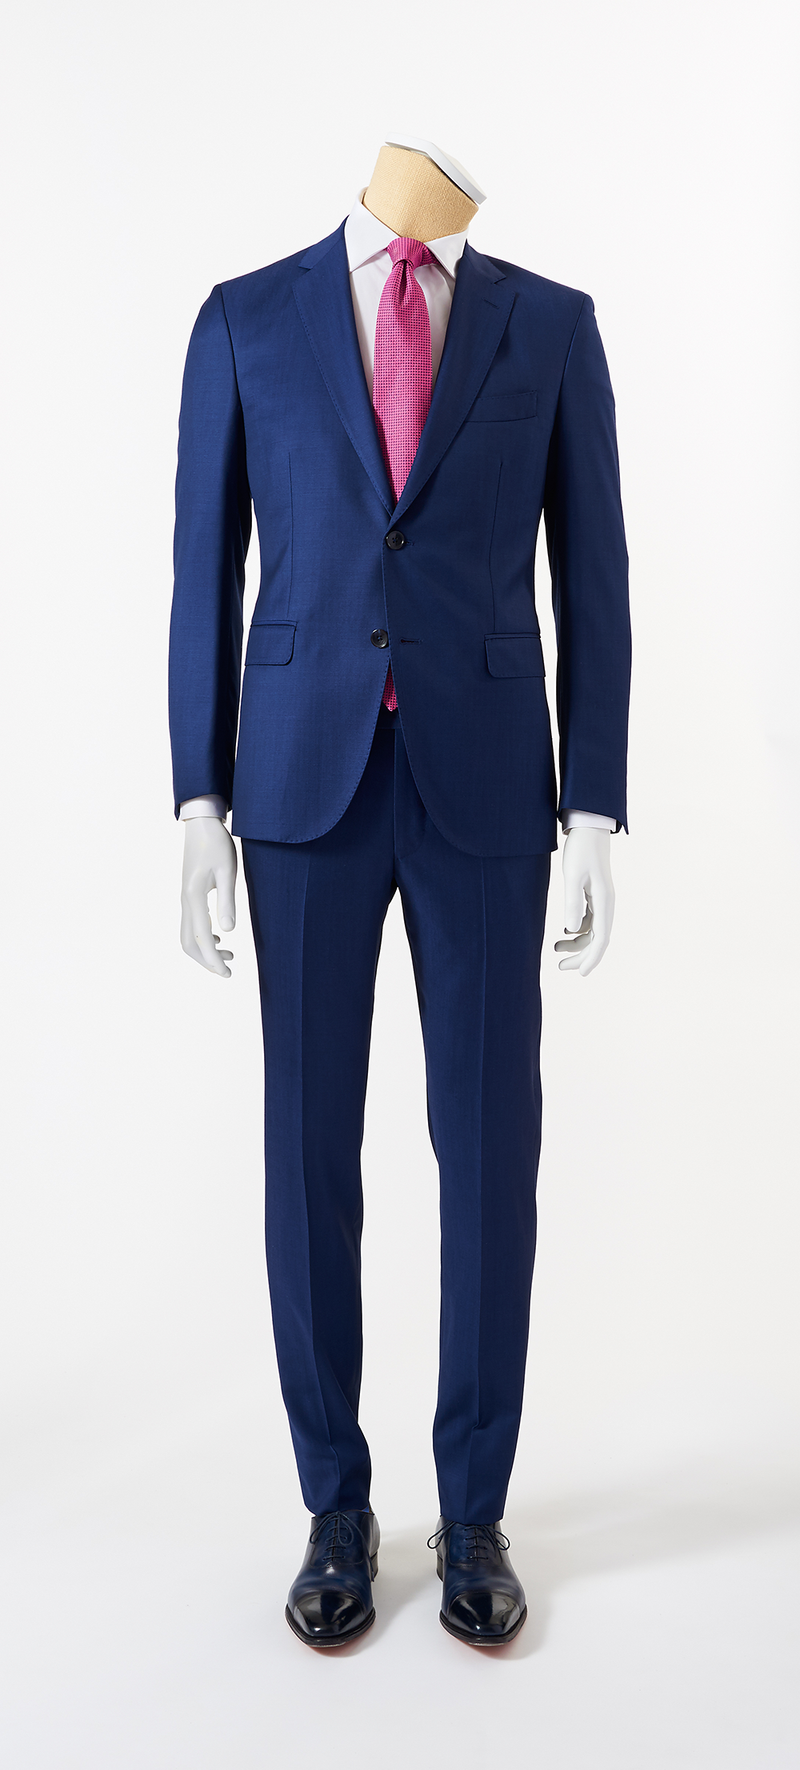 Calvaresi Suit - Royal Blue